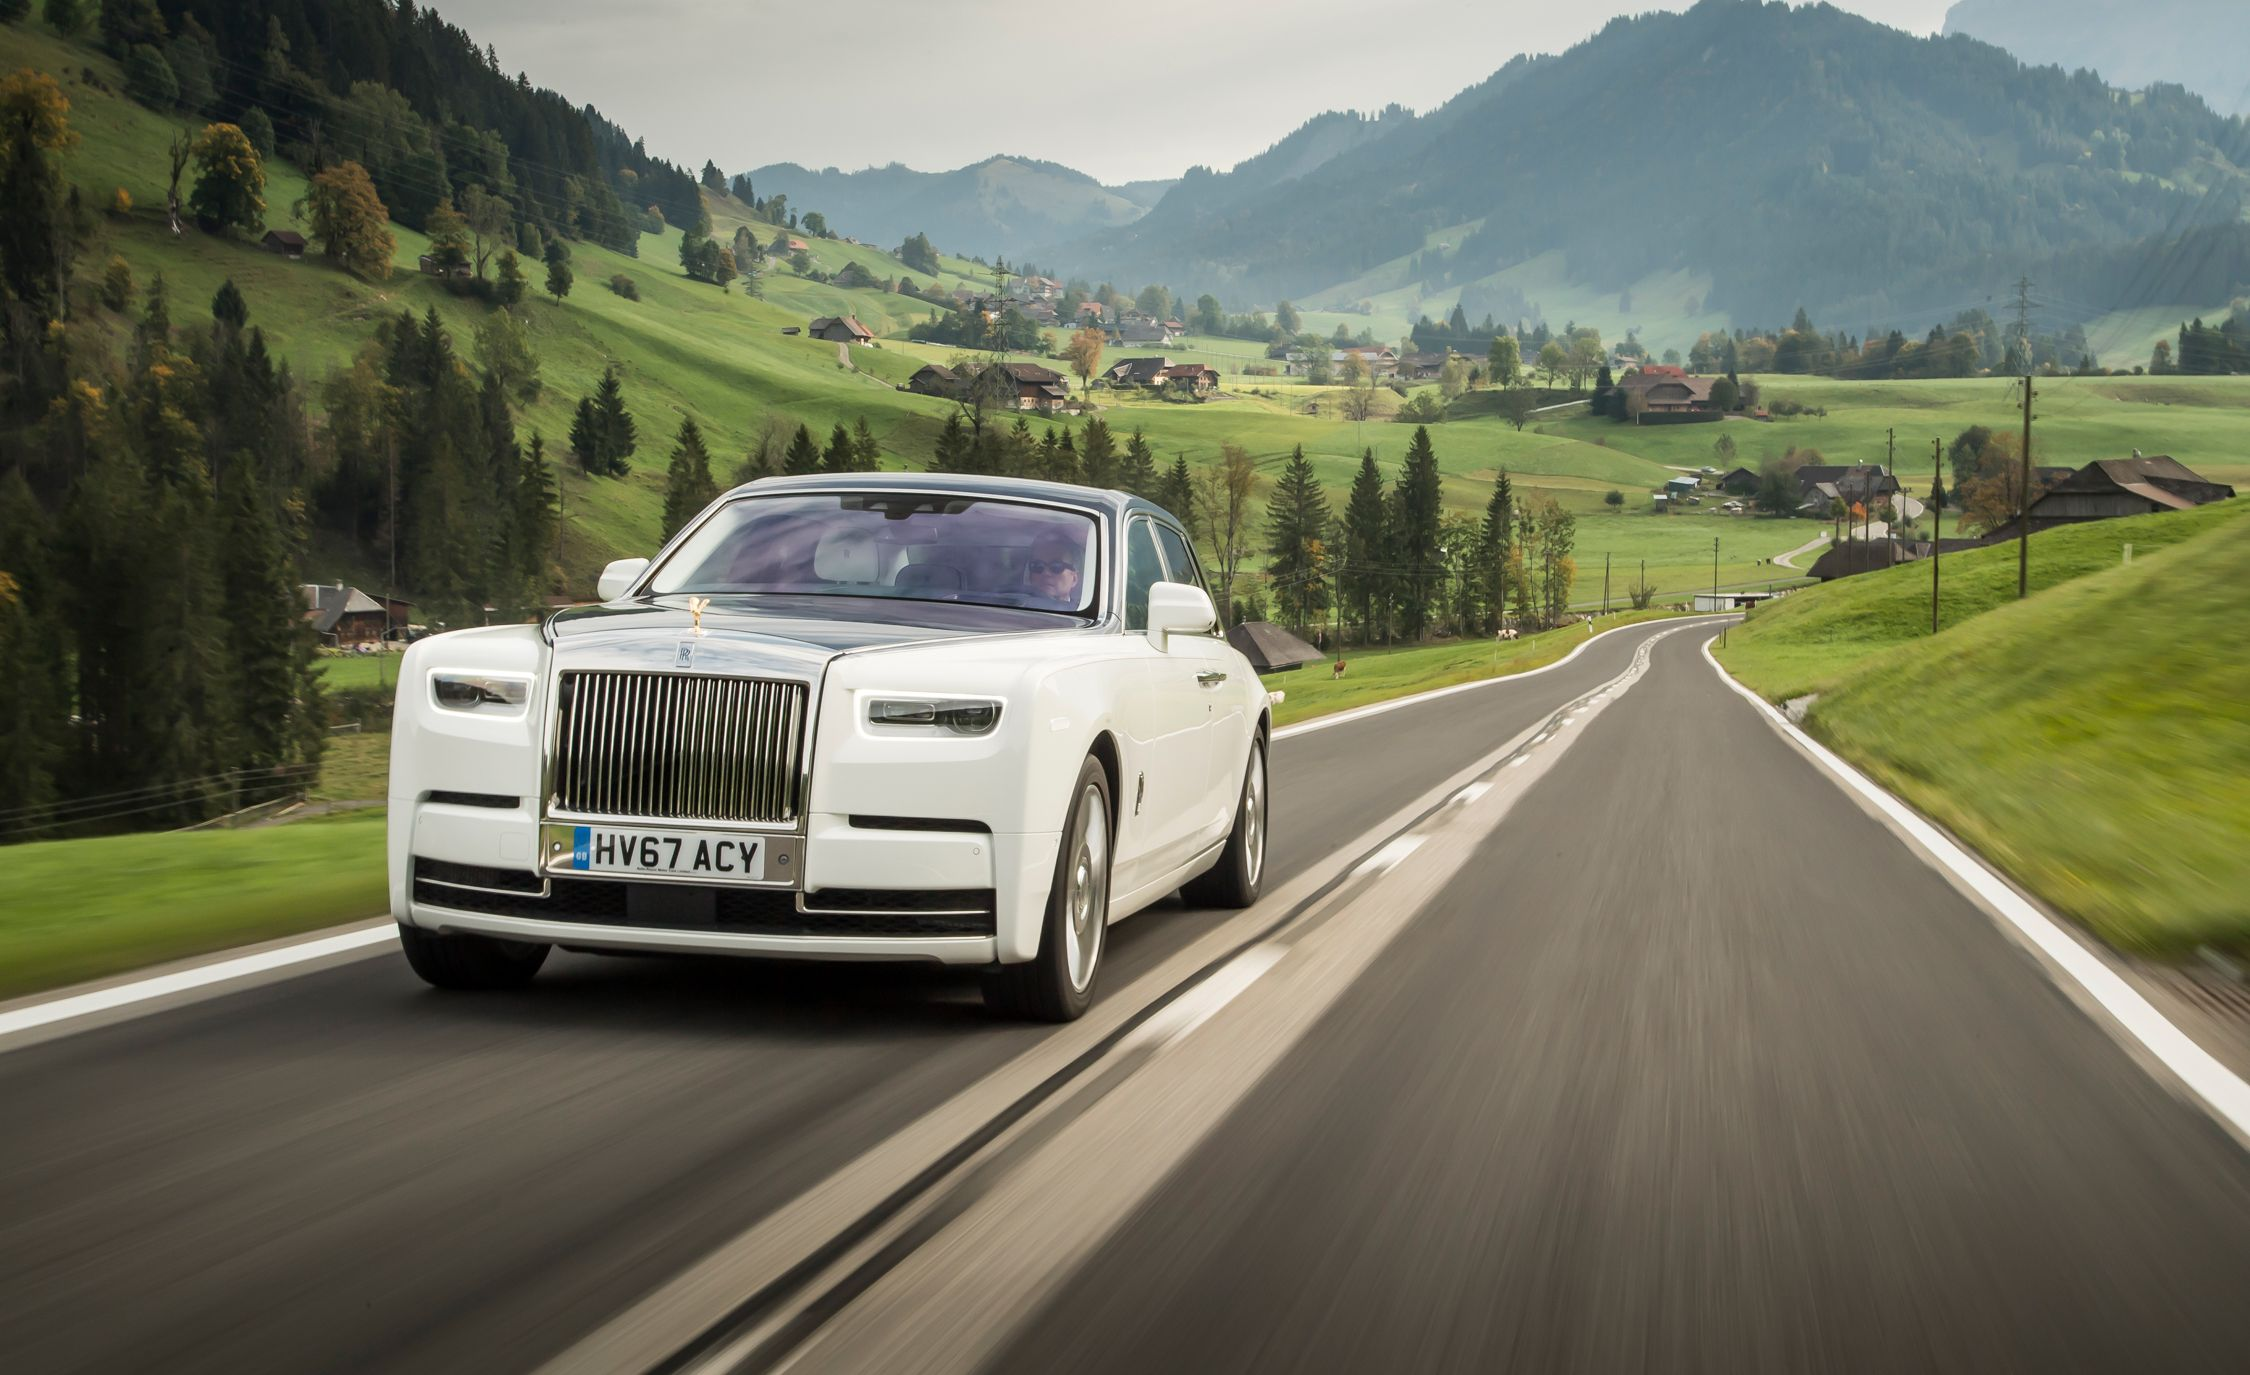 2019 Rolls Royce Phantom Reviews Price Photos And Specs Car Driver